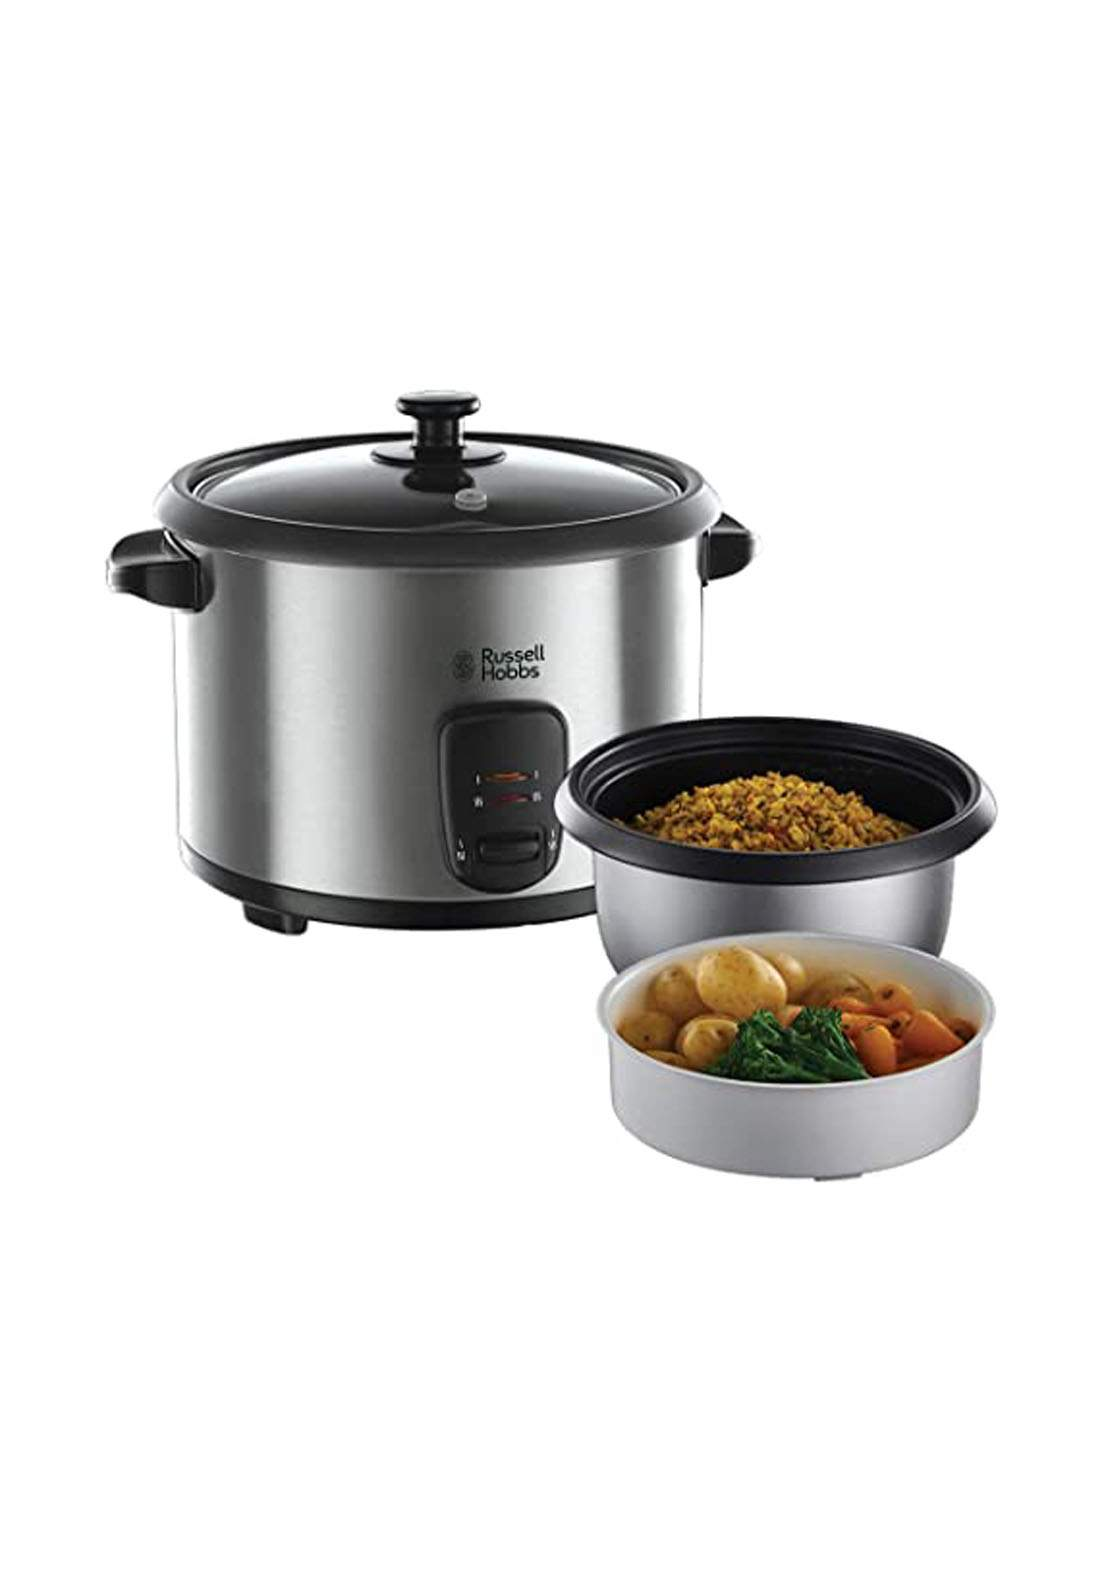 Russell hobbs 19750 Cooked pot قدر طهي